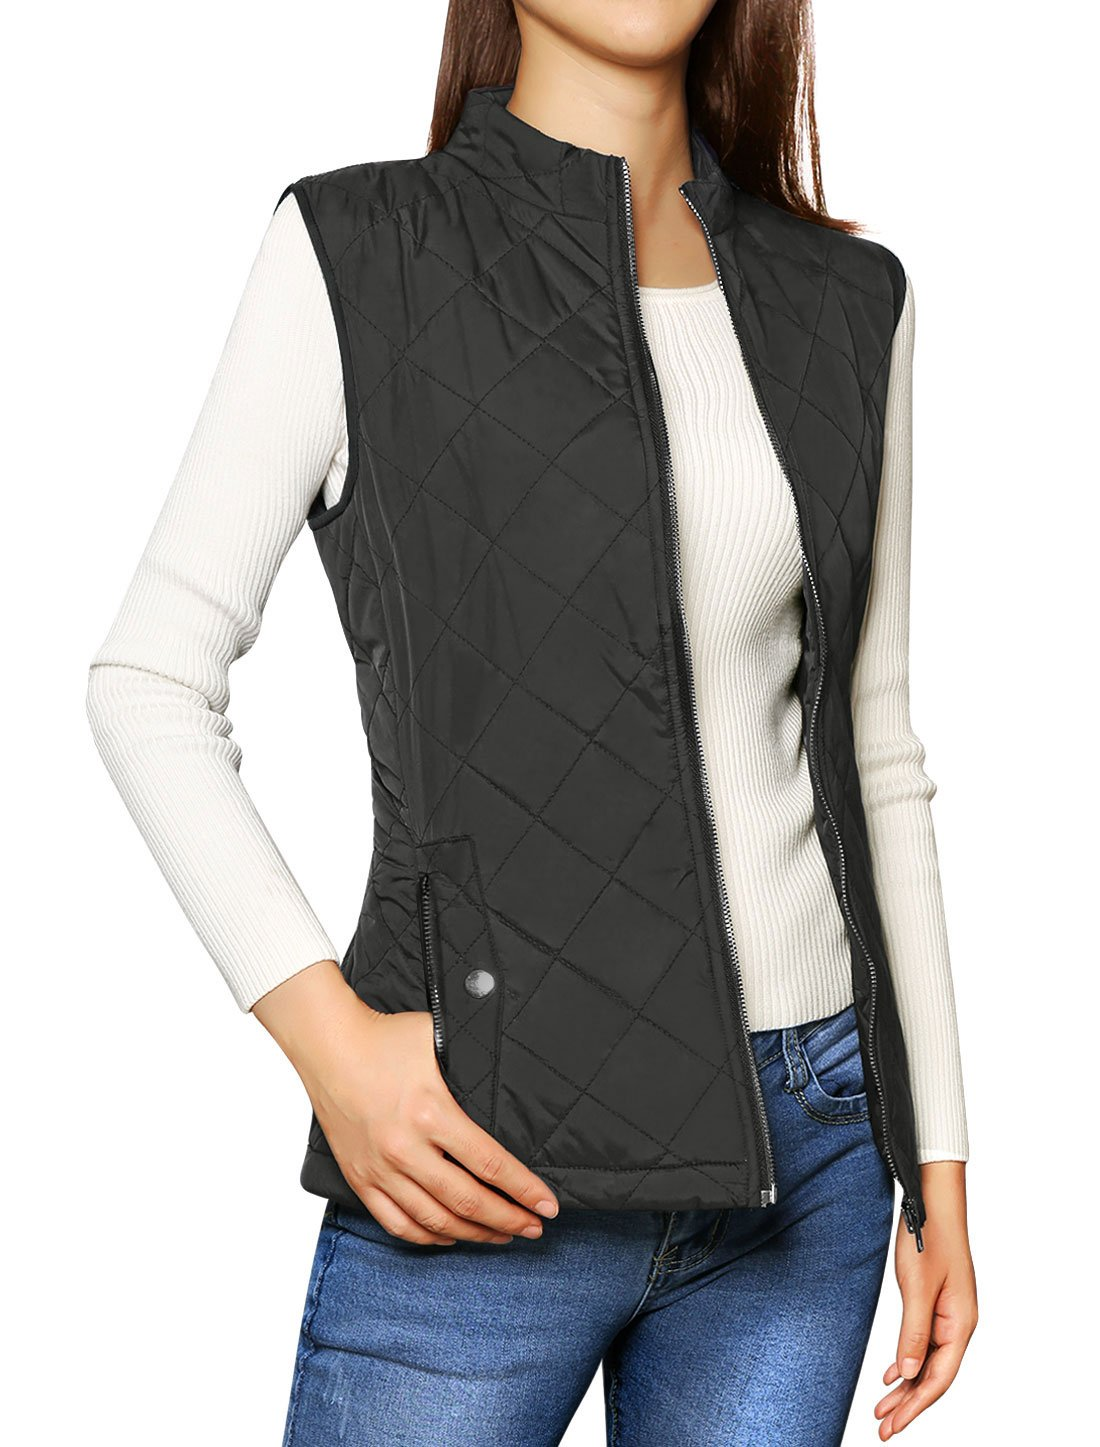 Allegra K Women's Zip Up Front Stand Collar Quilted Padded Vest L Black